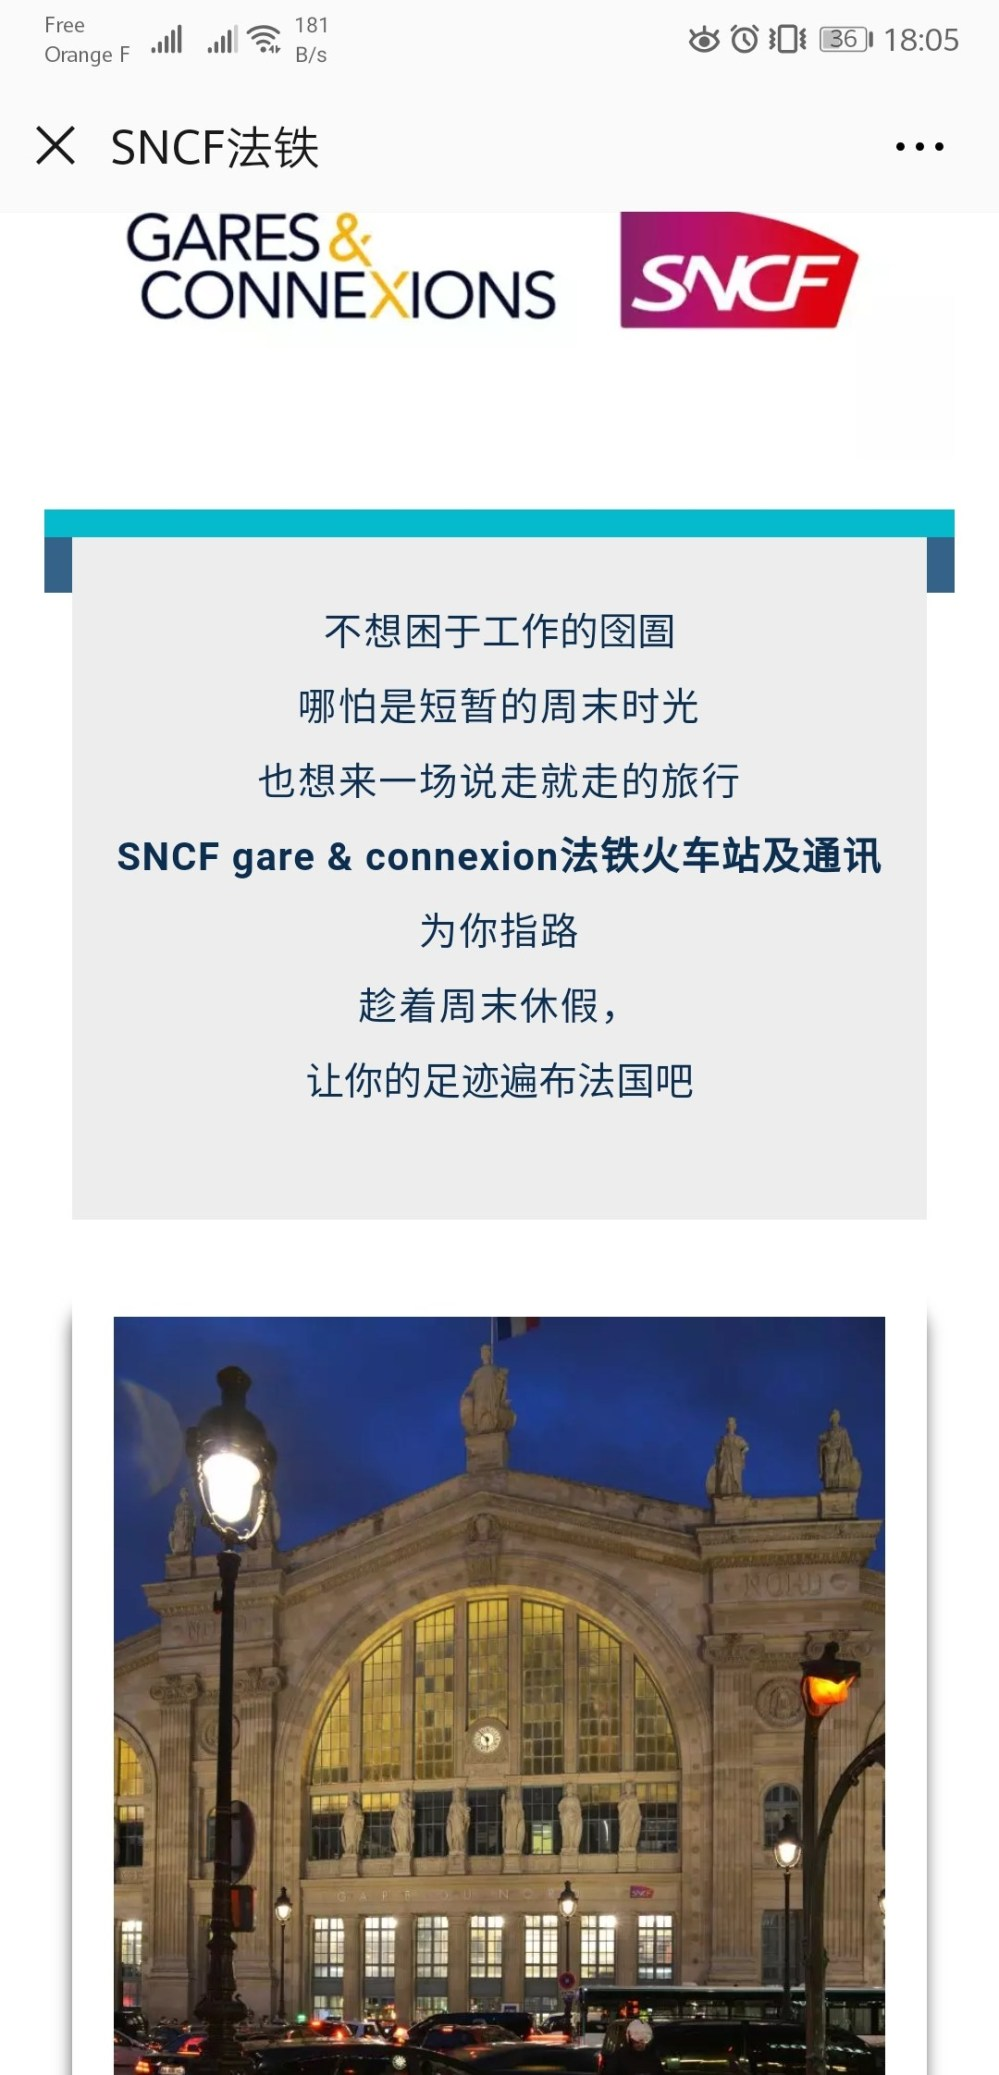 Gares & Connections SNCF WeChat official account